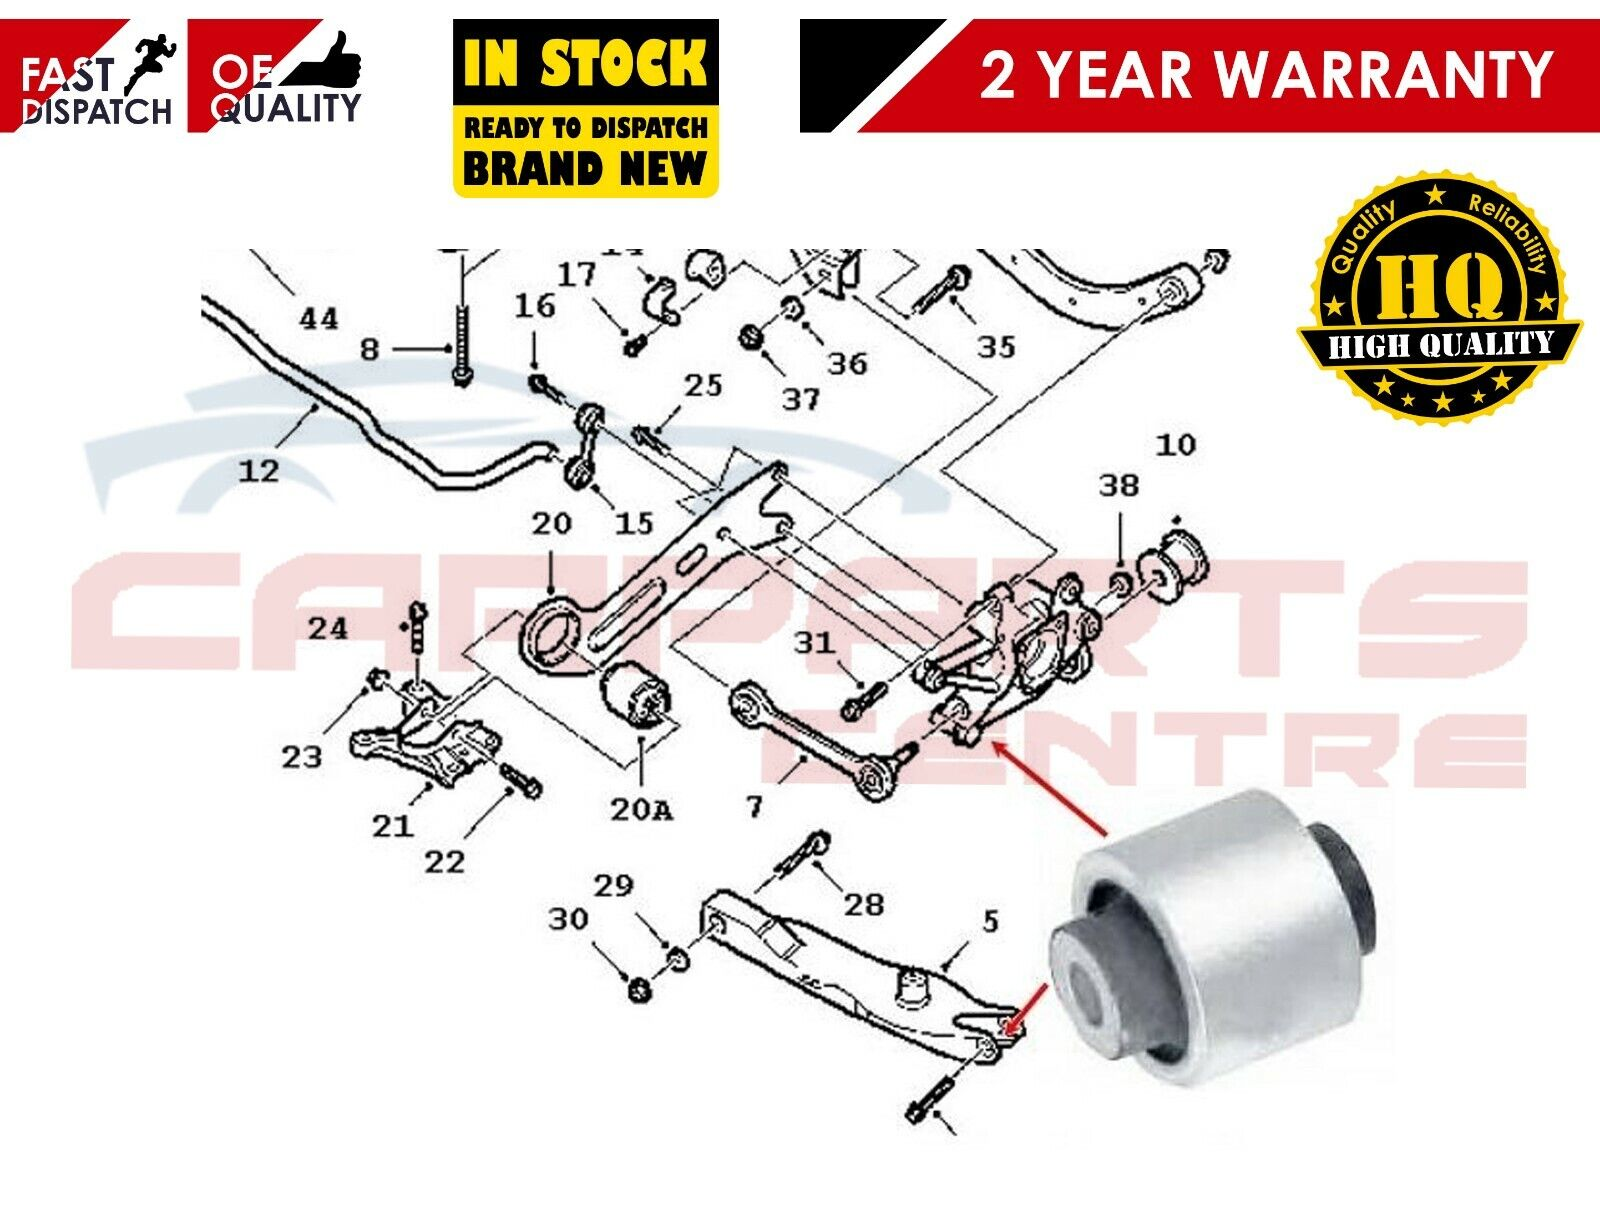 Vauxhall//Opel Vectra 2 C Rear Suspension Upper Trailing Control Arm Key Parts